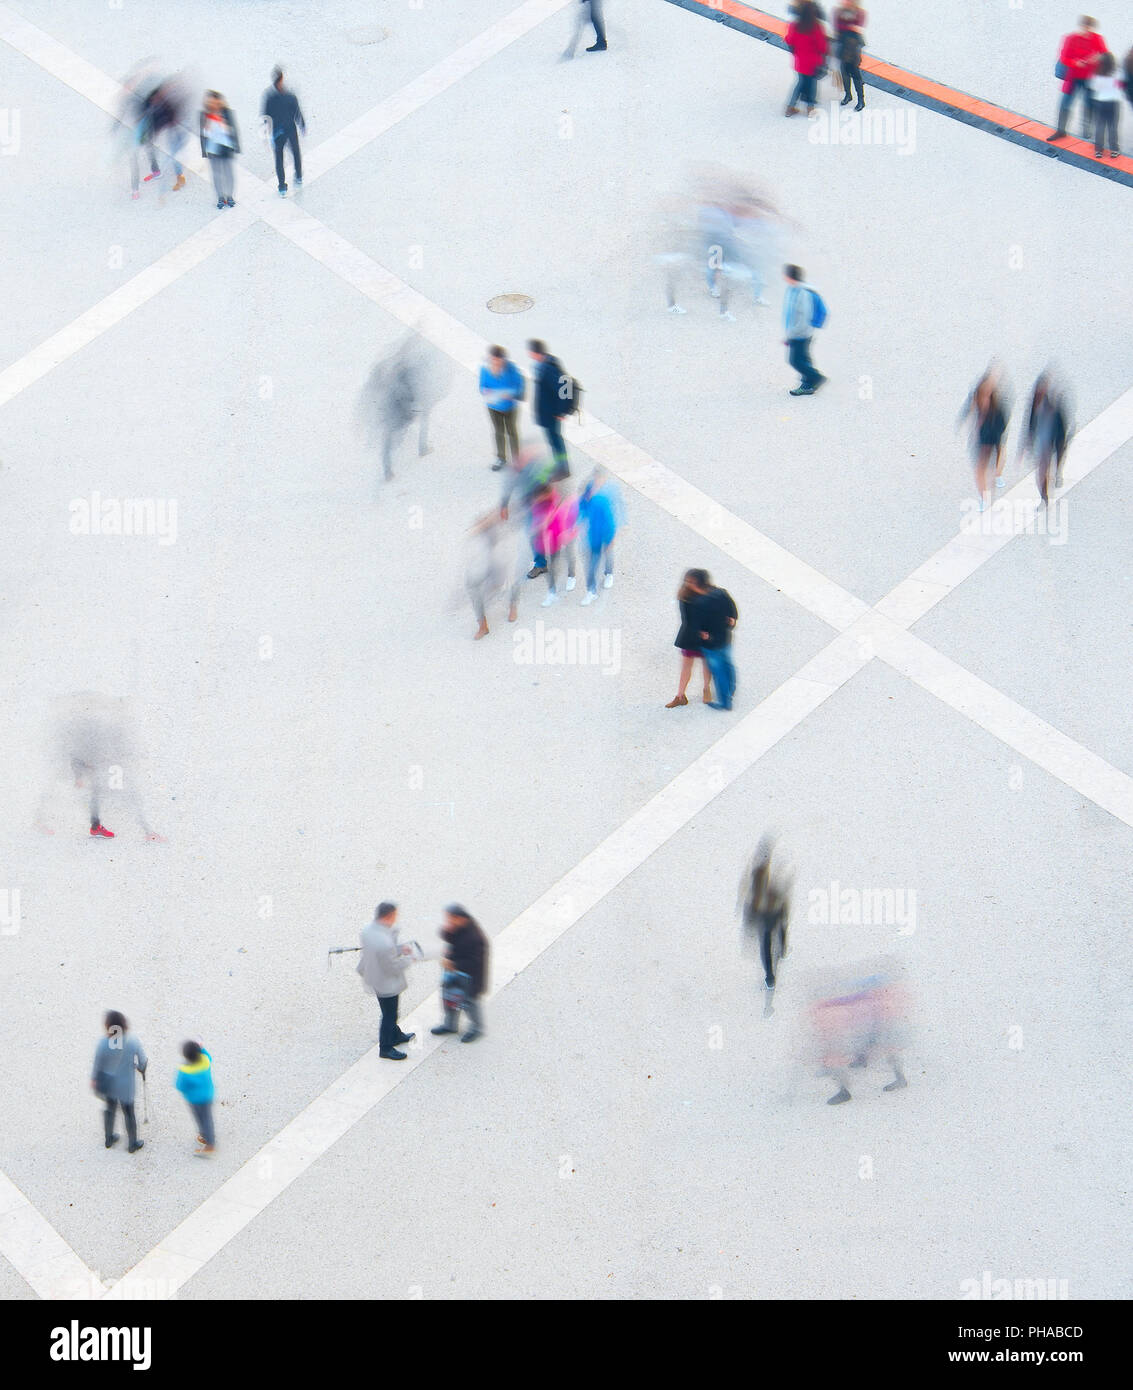 People motion blur, aerial view - Stock Image